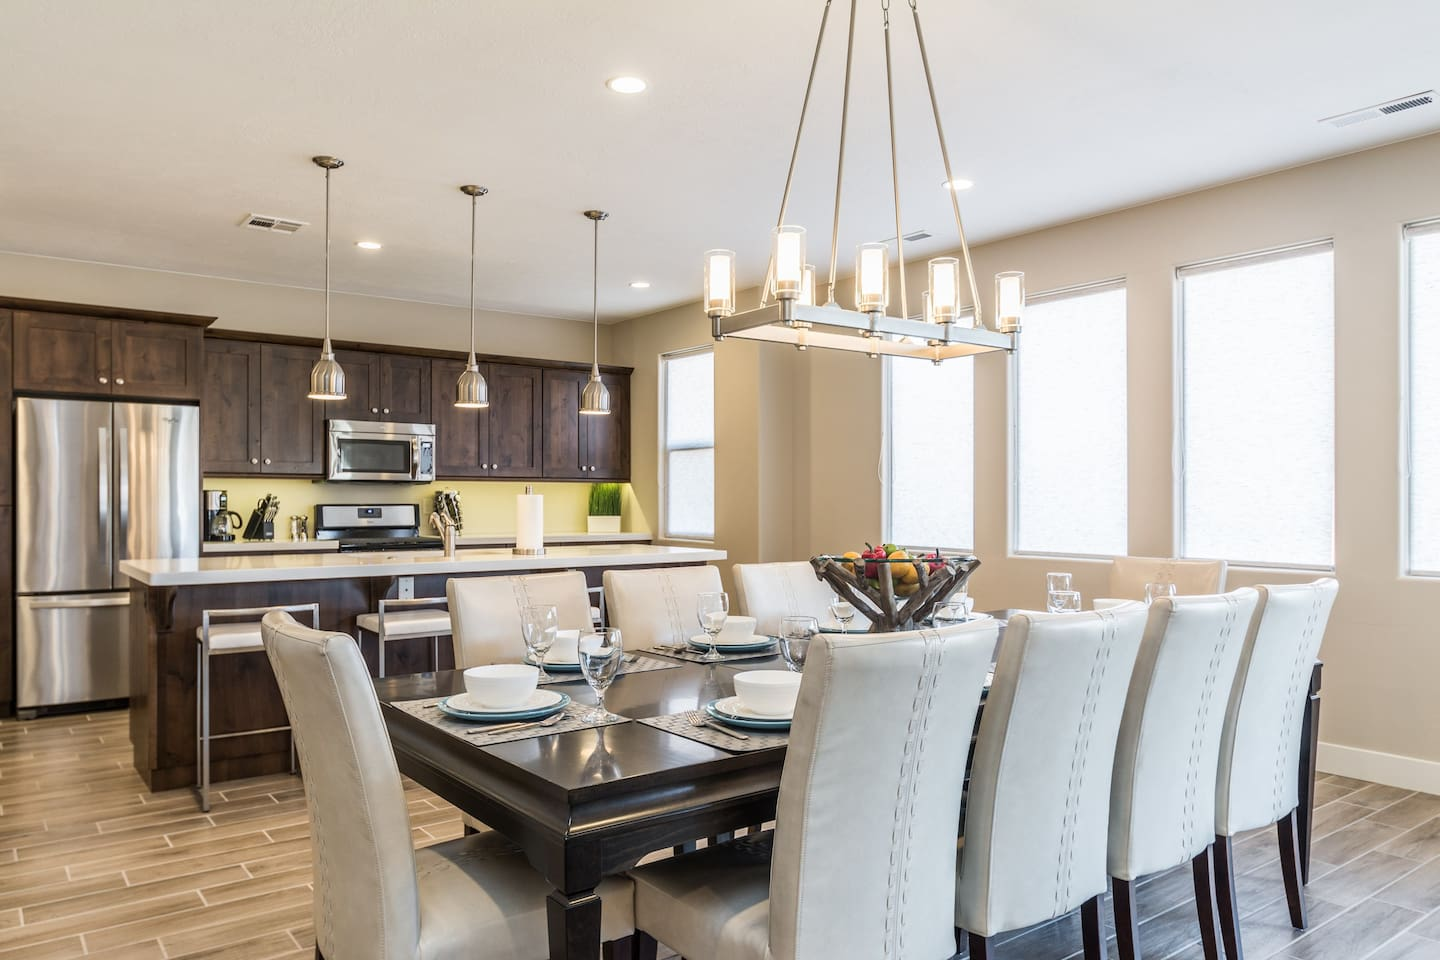 Dine up to 10 guests at the dining table and 4 at the kitchen island